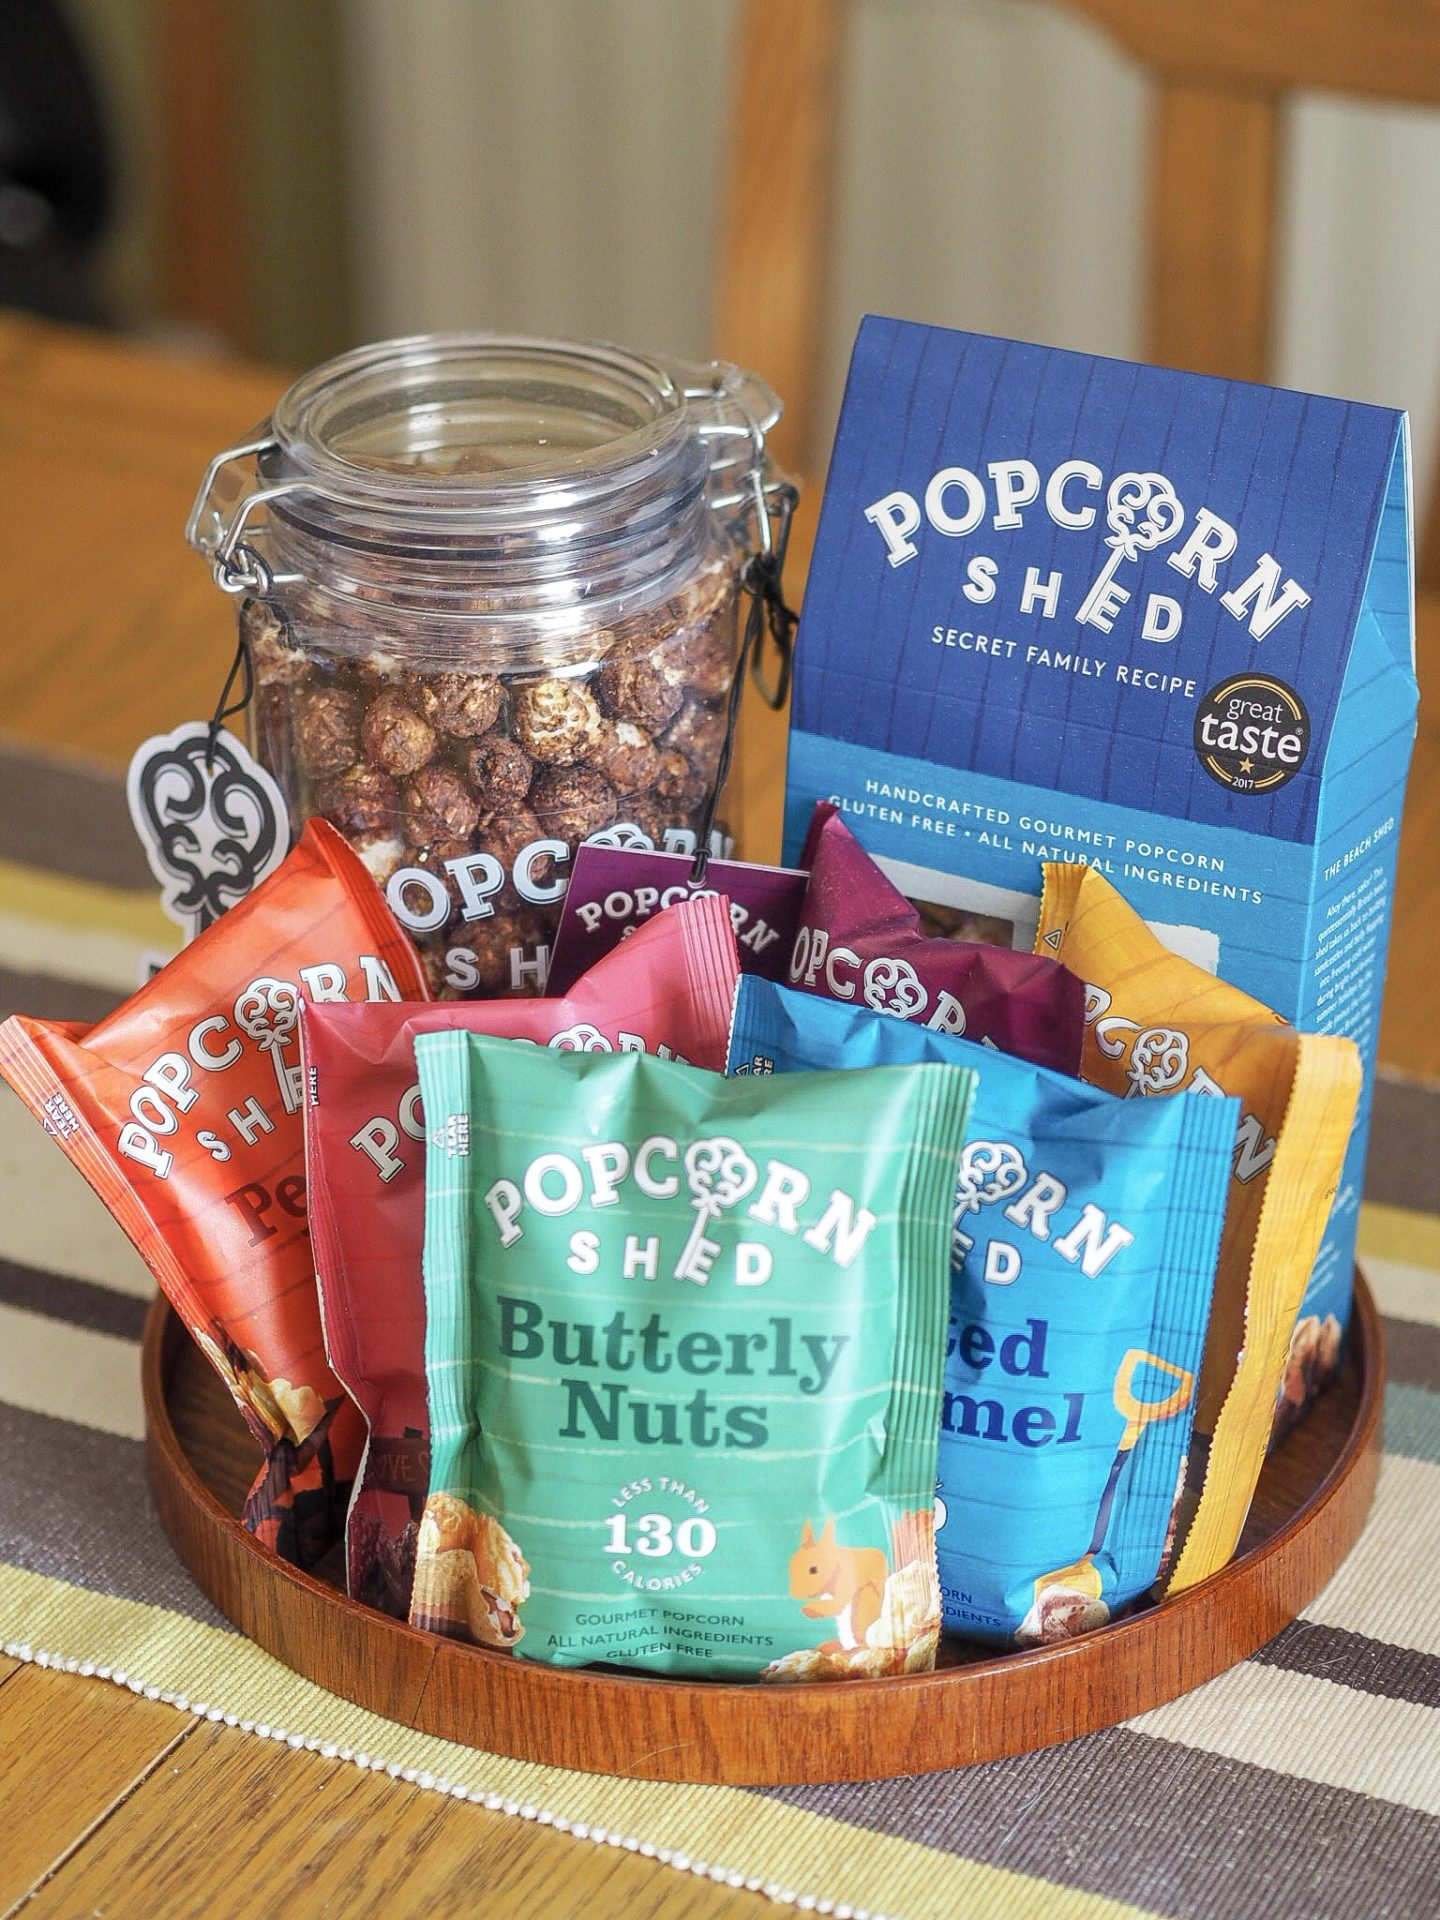 AD | Gourmet Popcorn from Popcorn Shed